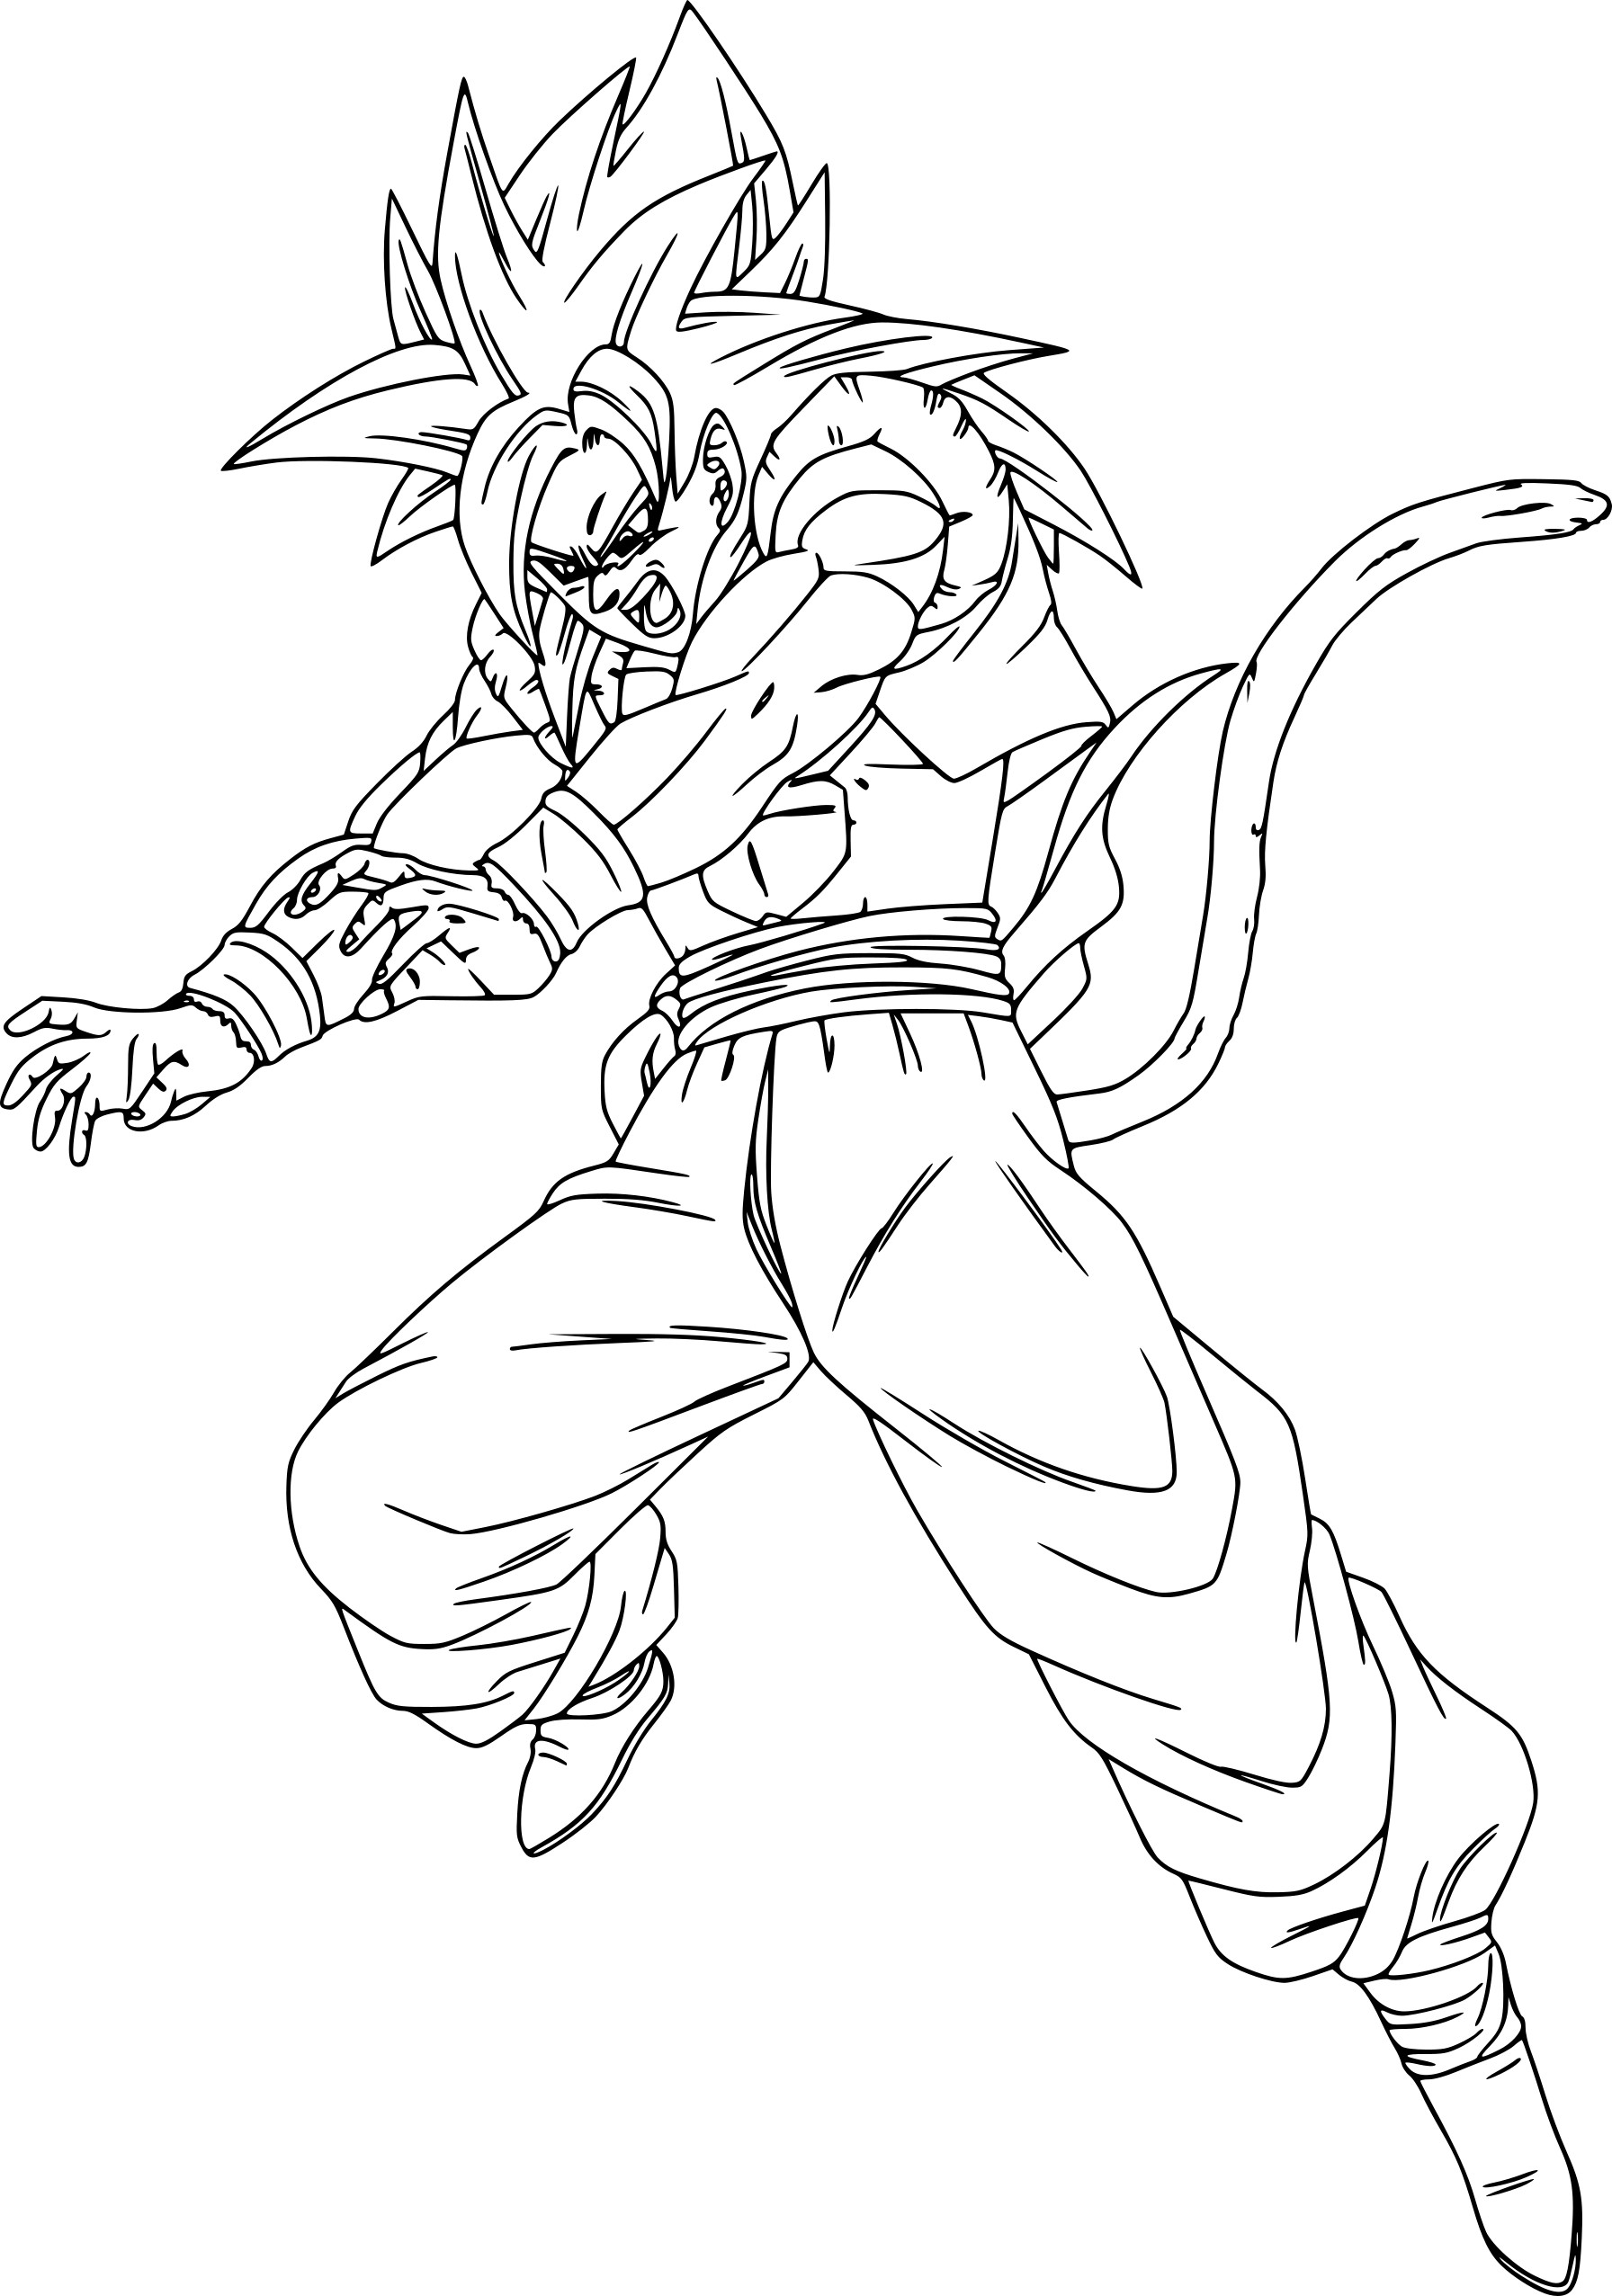 Coloriage gogeta dragon ball z imprimer - Dessin de dragon ball za imprimer ...